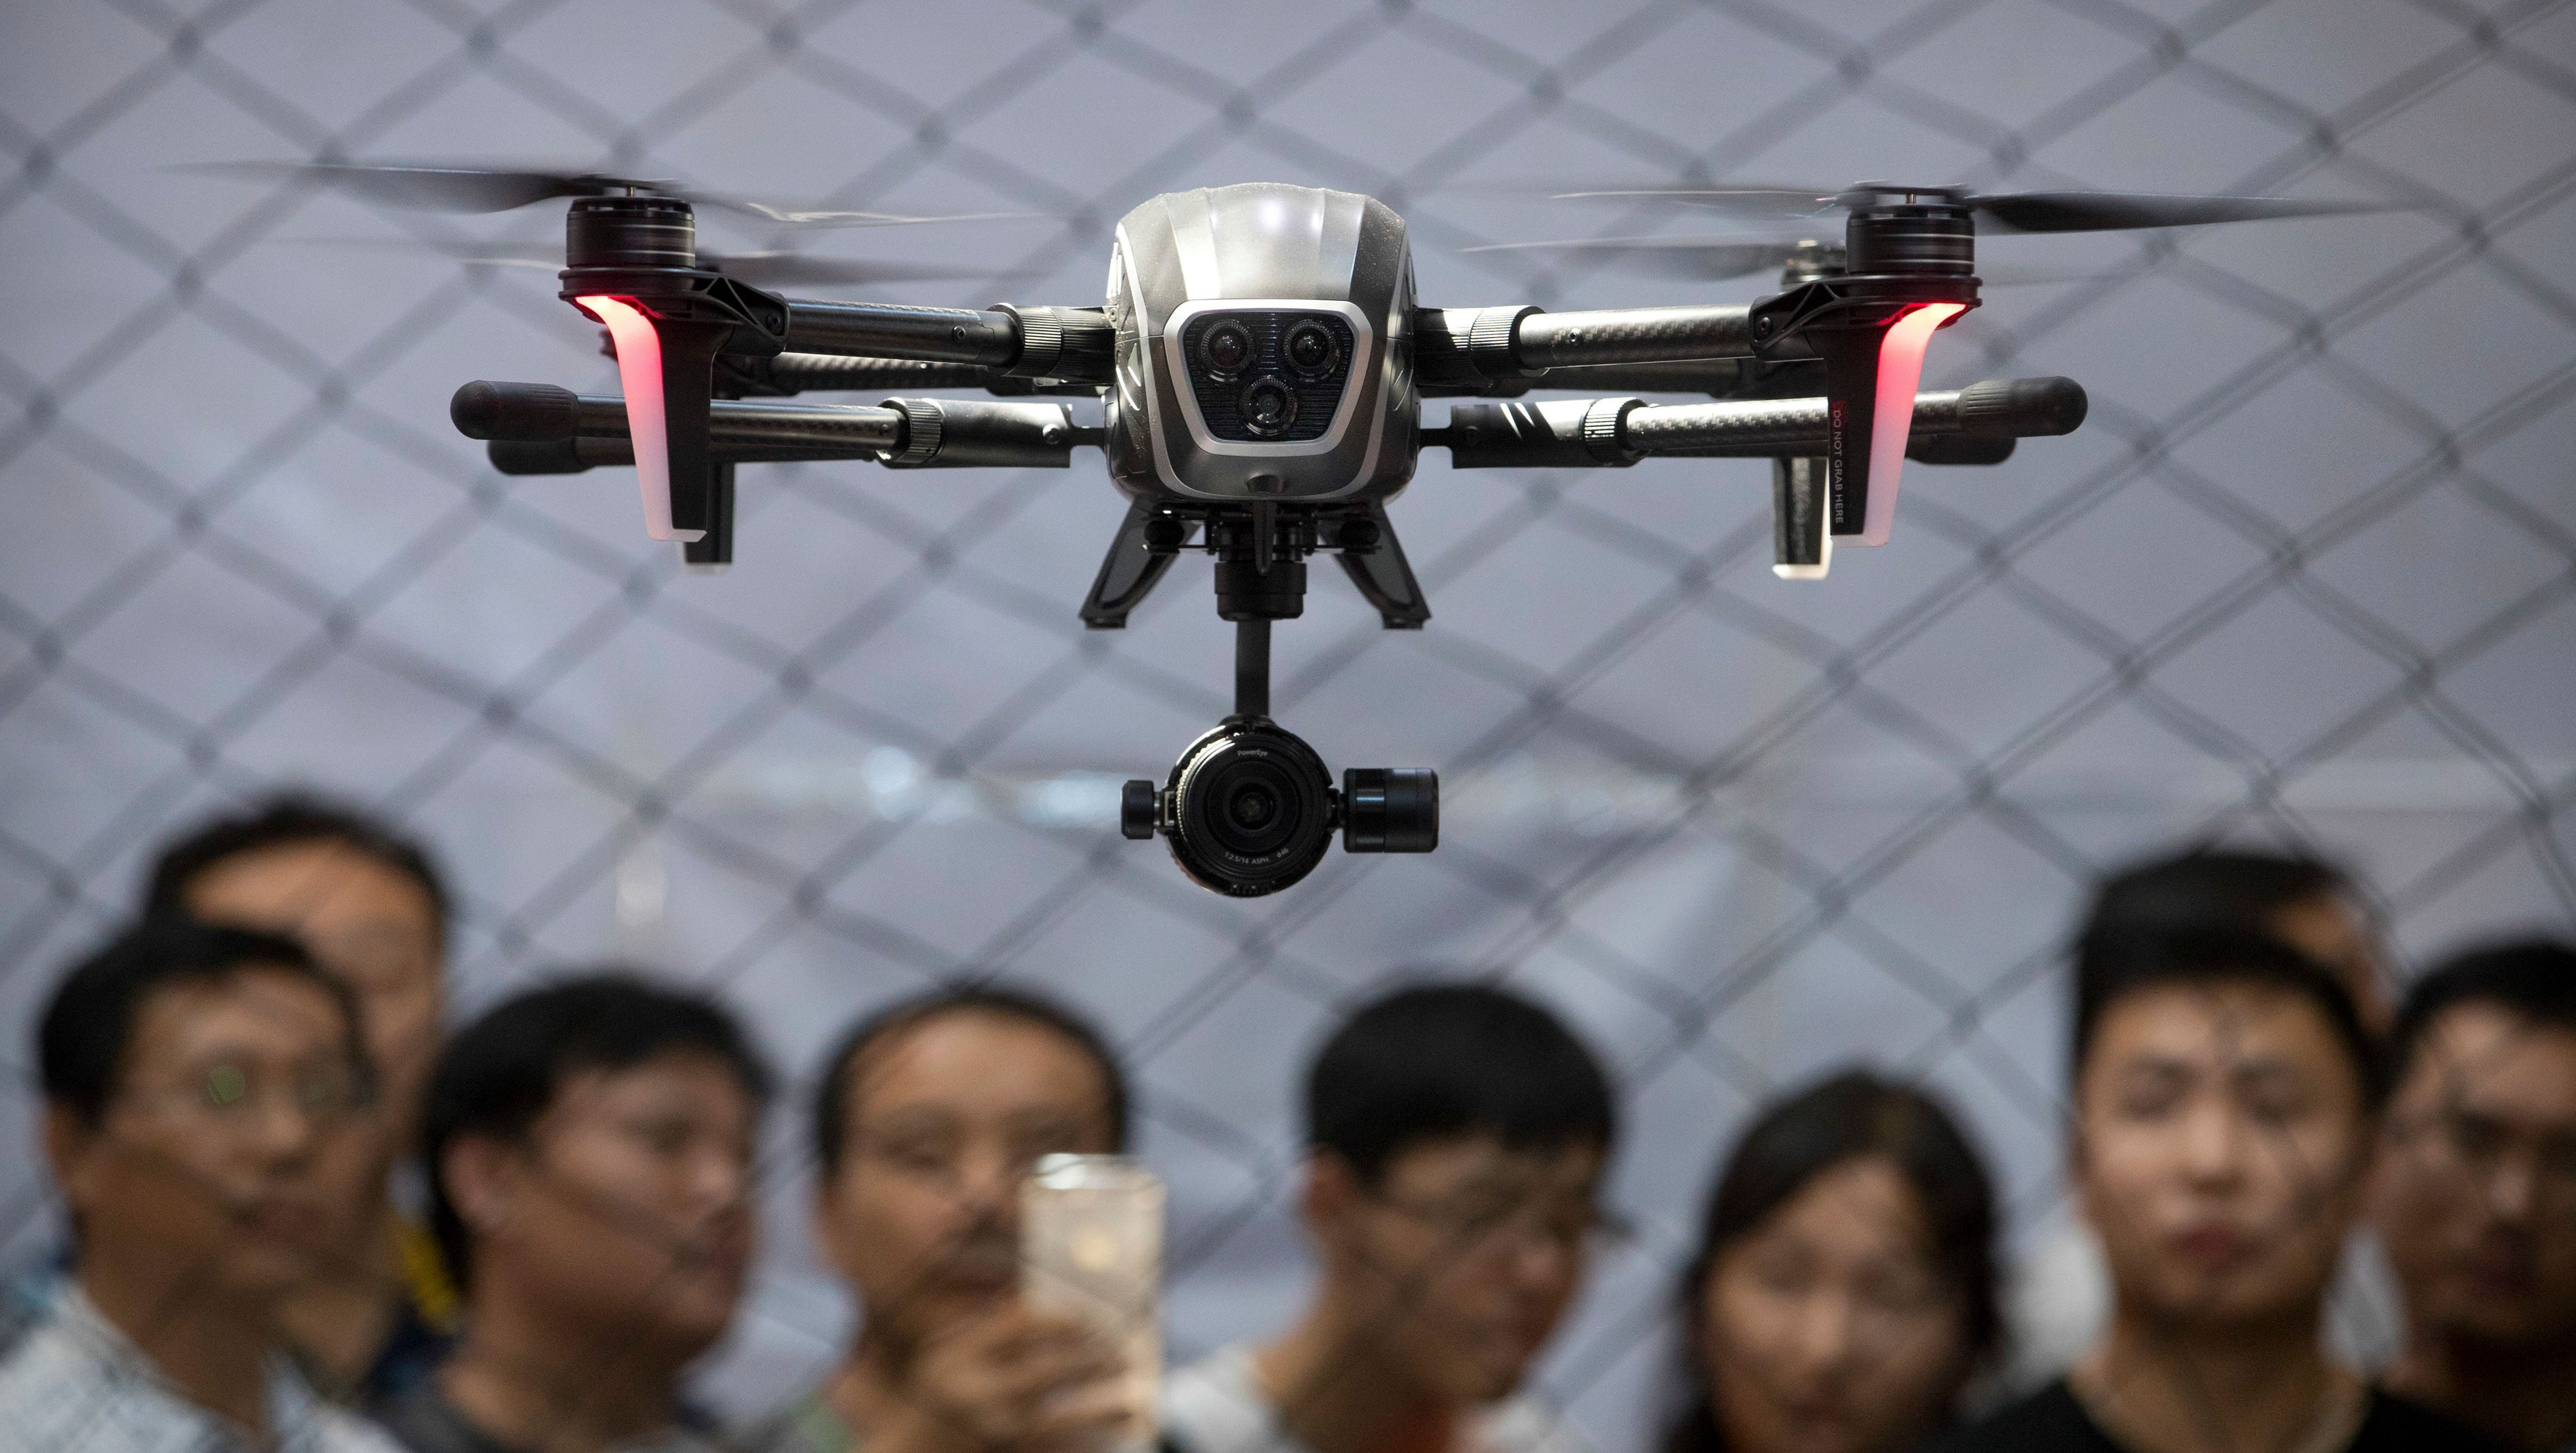 Visitors watch as a drone made by PowerVision hovers during a demonstration at the World Robot Conference in Beijing, Thursday, Aug. 24, 2017. The annual conference is a showcase of China's burgeoning robot industry ranging from companion robots to those deployed on manufacturing assembly line and entertainment. (AP Photo/Mark Schiefelbein)